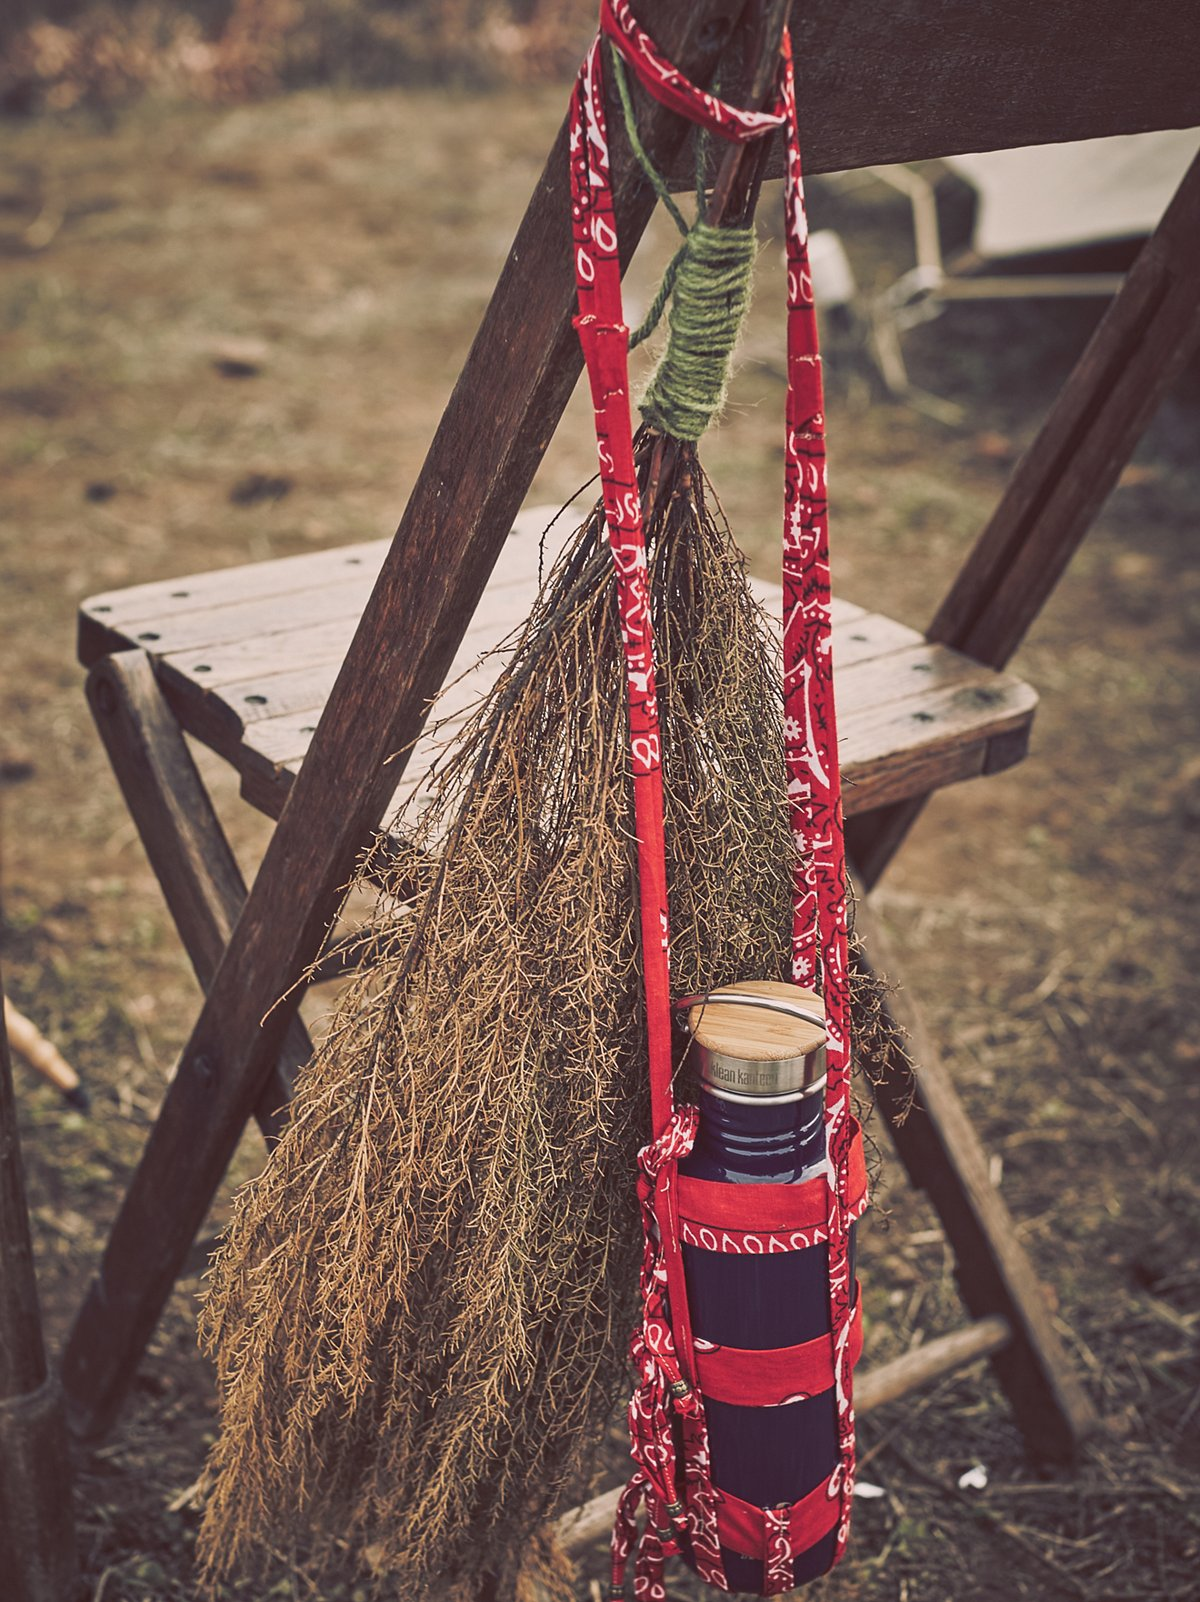 Bandana Water Bottle Holder